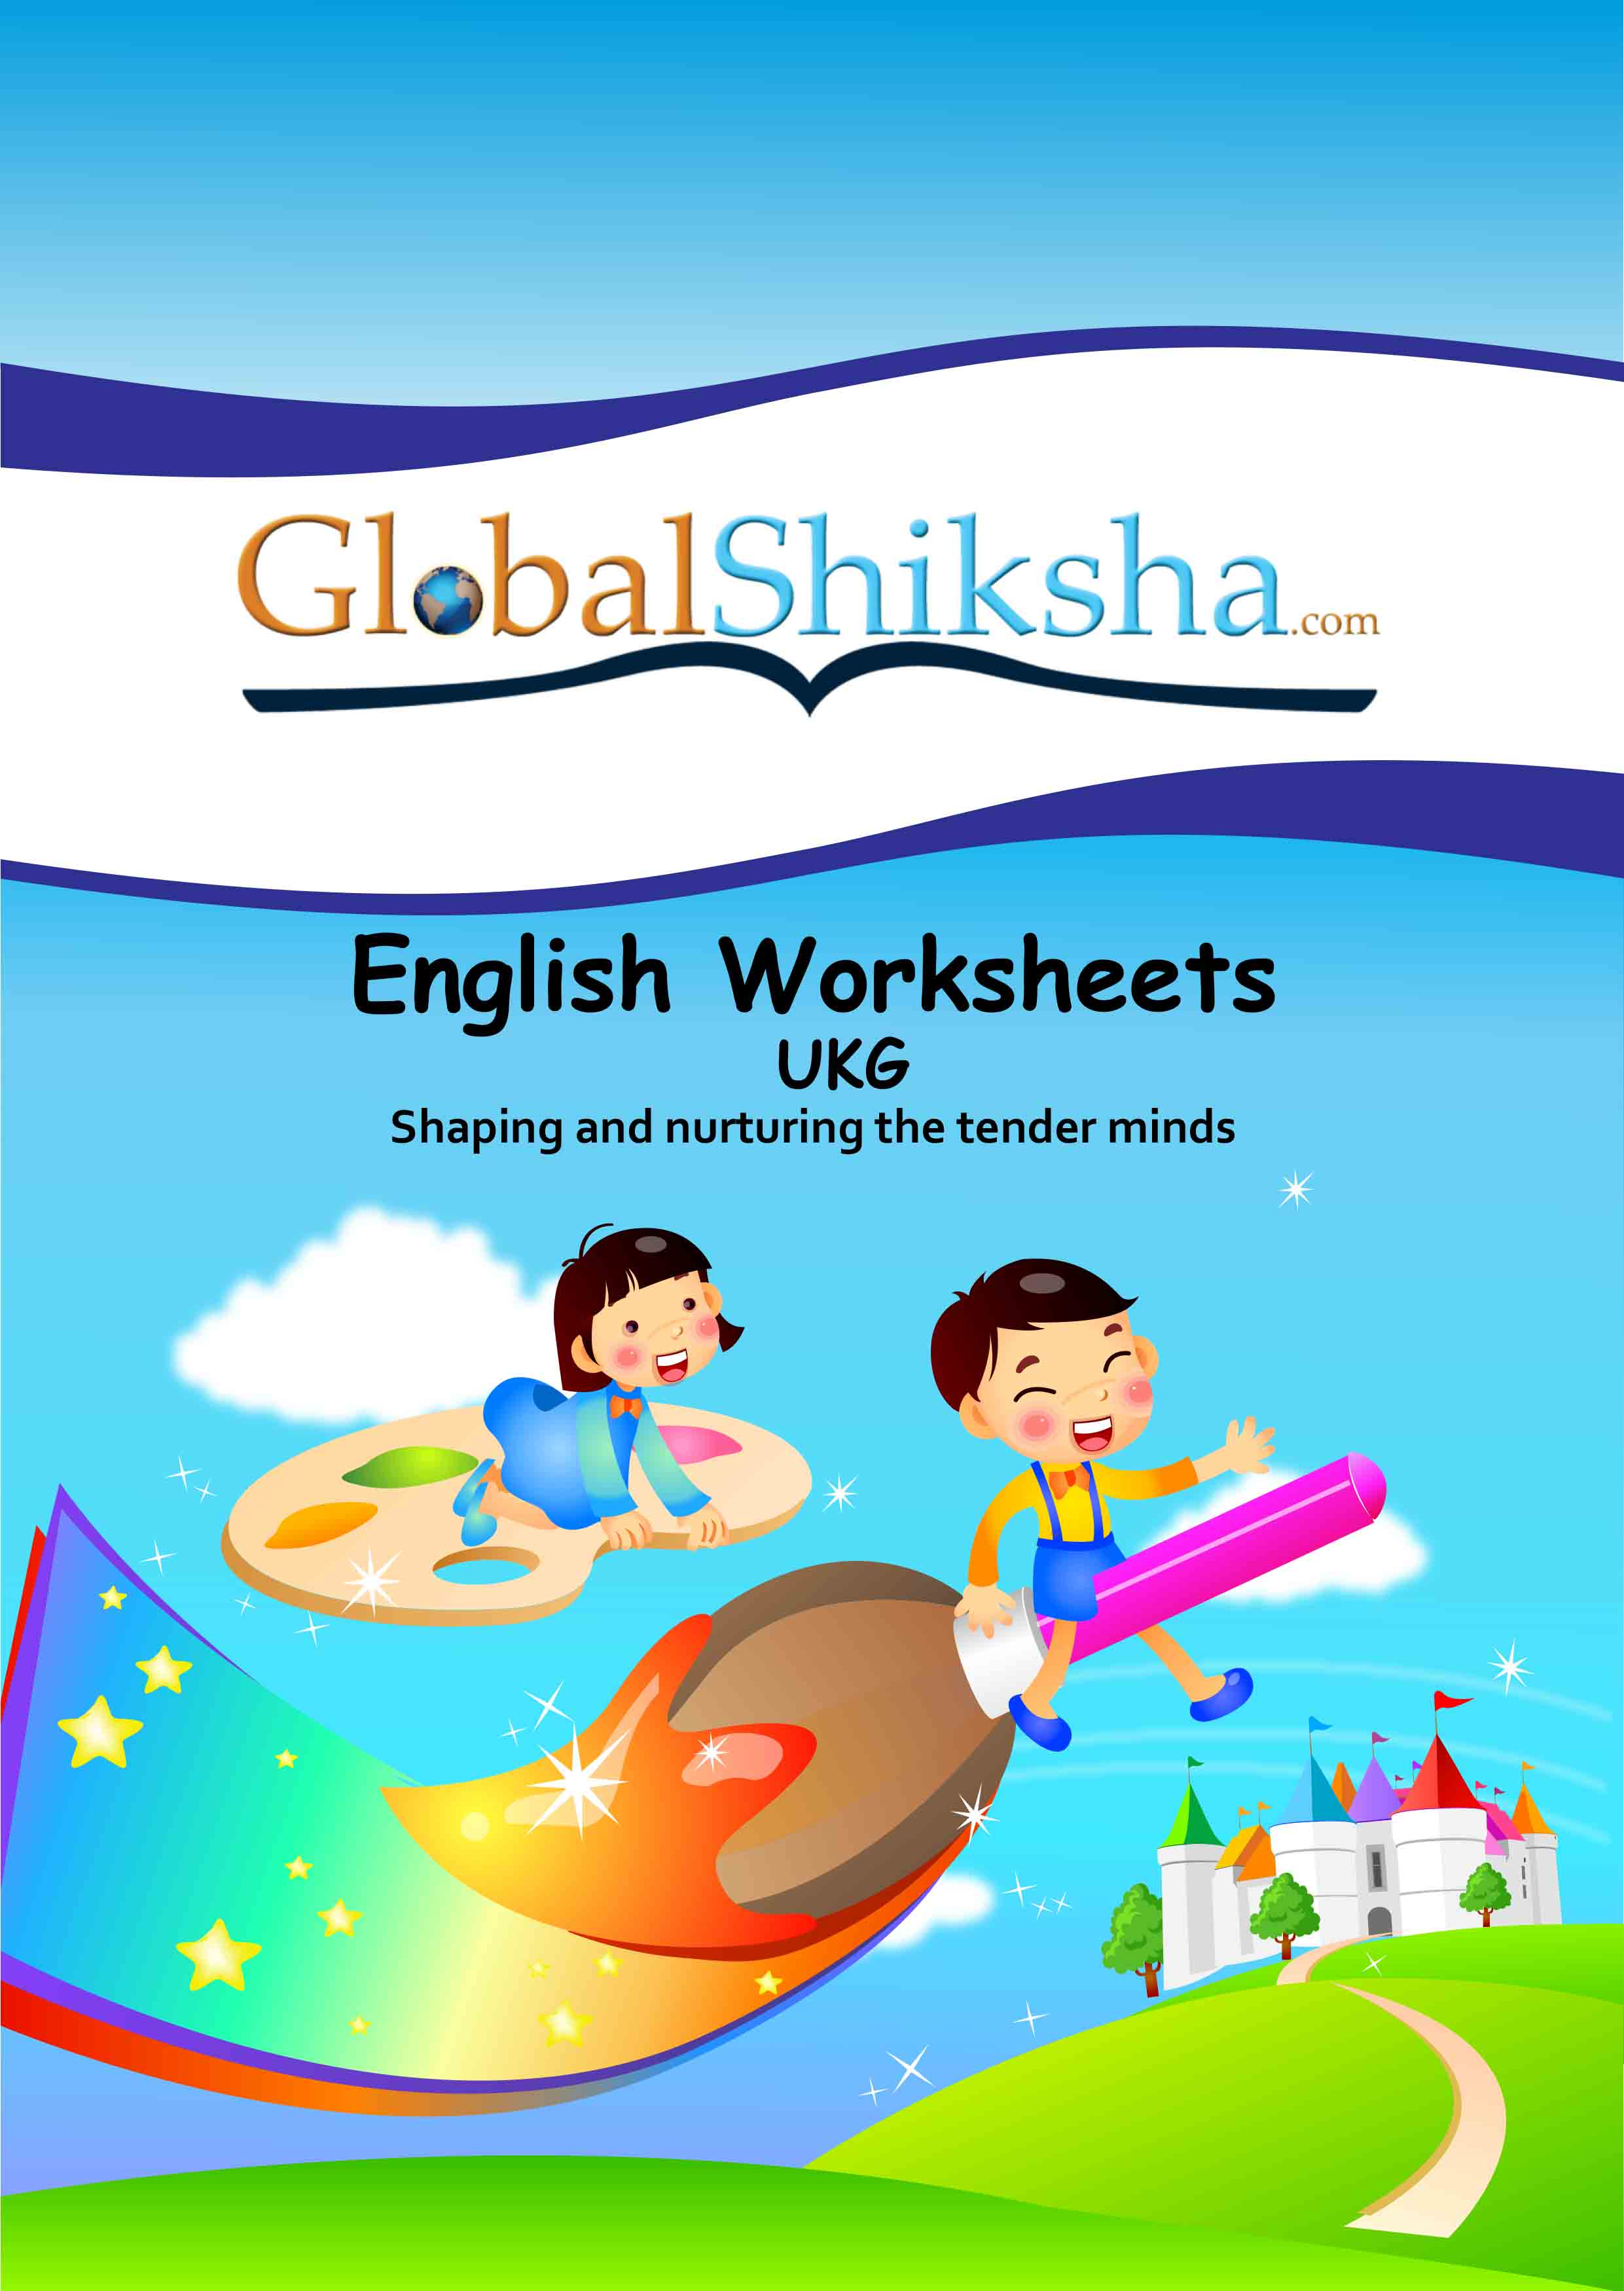 Worksheets For Ukg